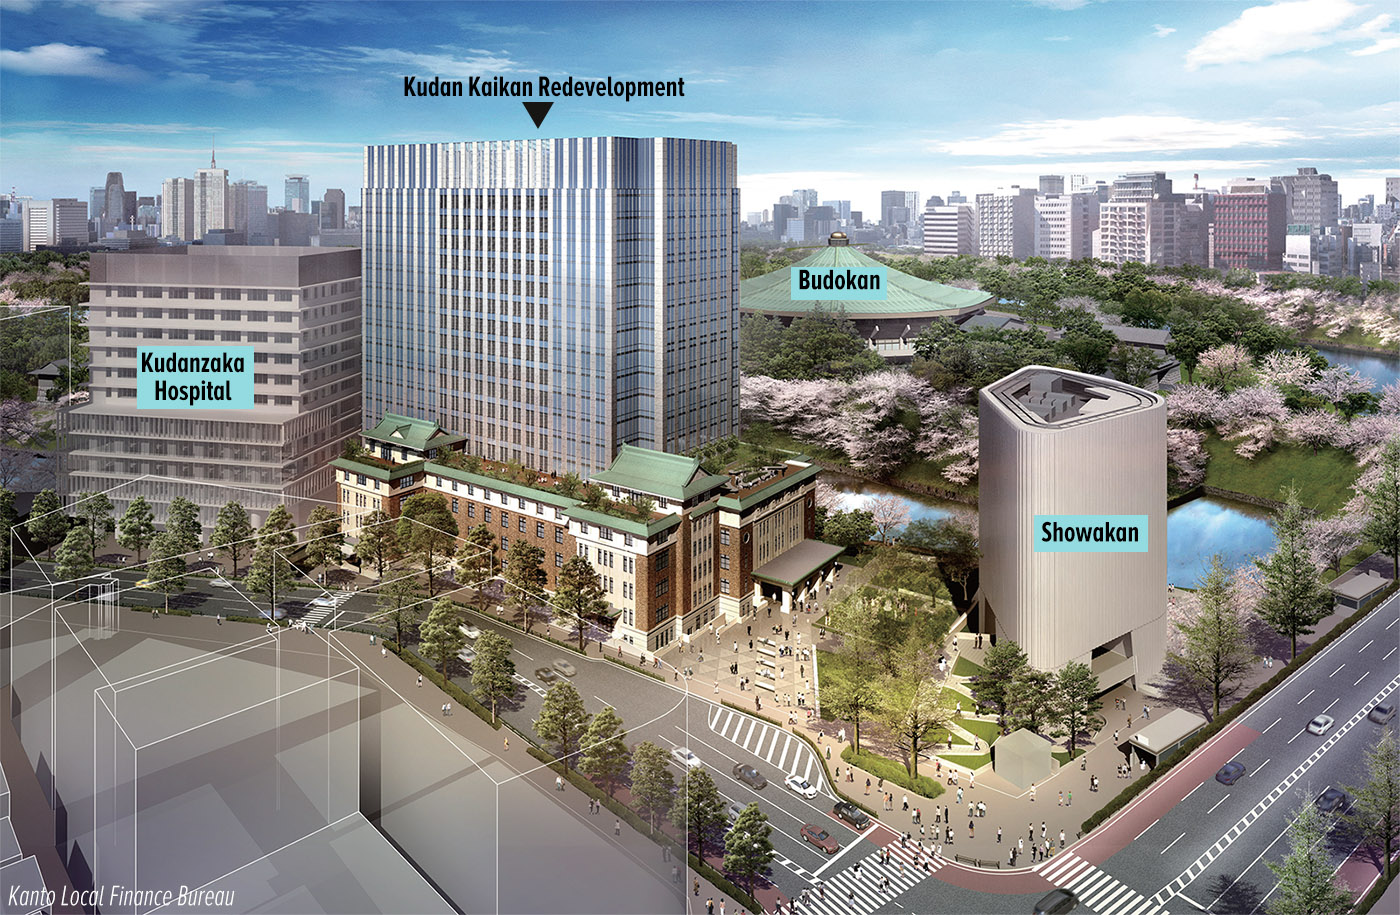 Historic Kudan Kaikan redevelopment plans announced